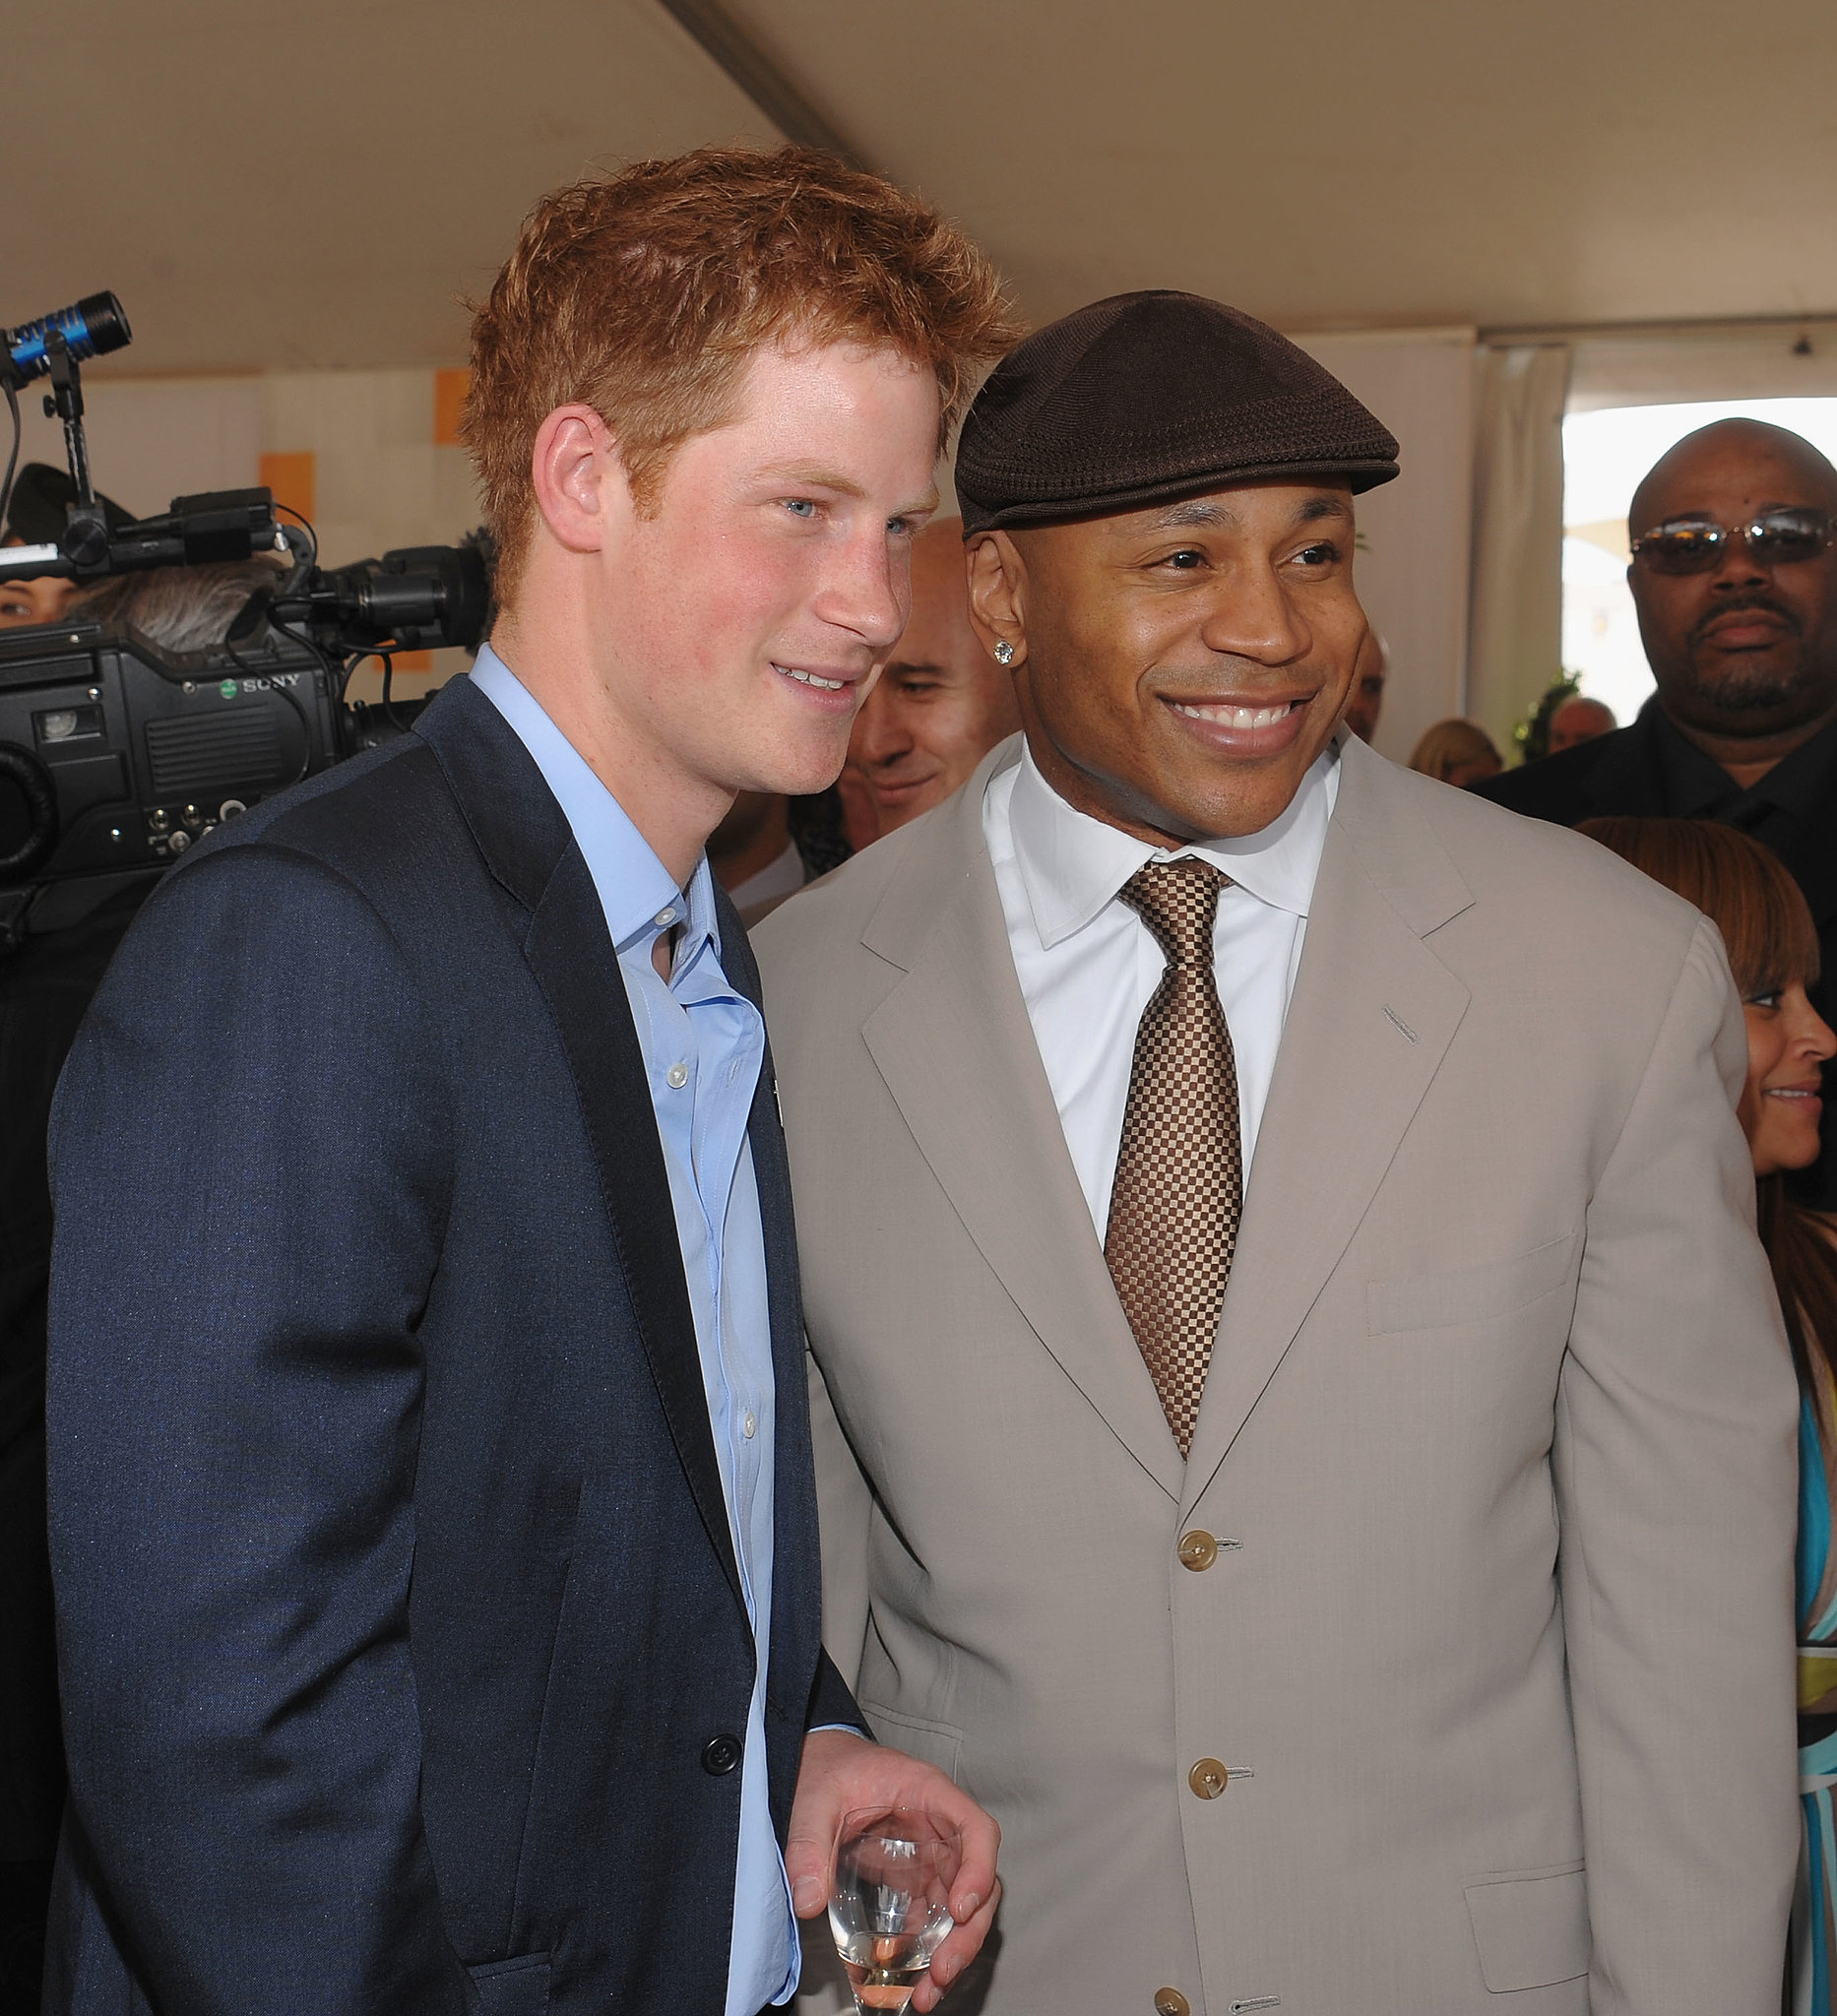 Prince Harry posed with LL Cool J at the Veuve Clicquot Polo Classic in NYC in 2009.